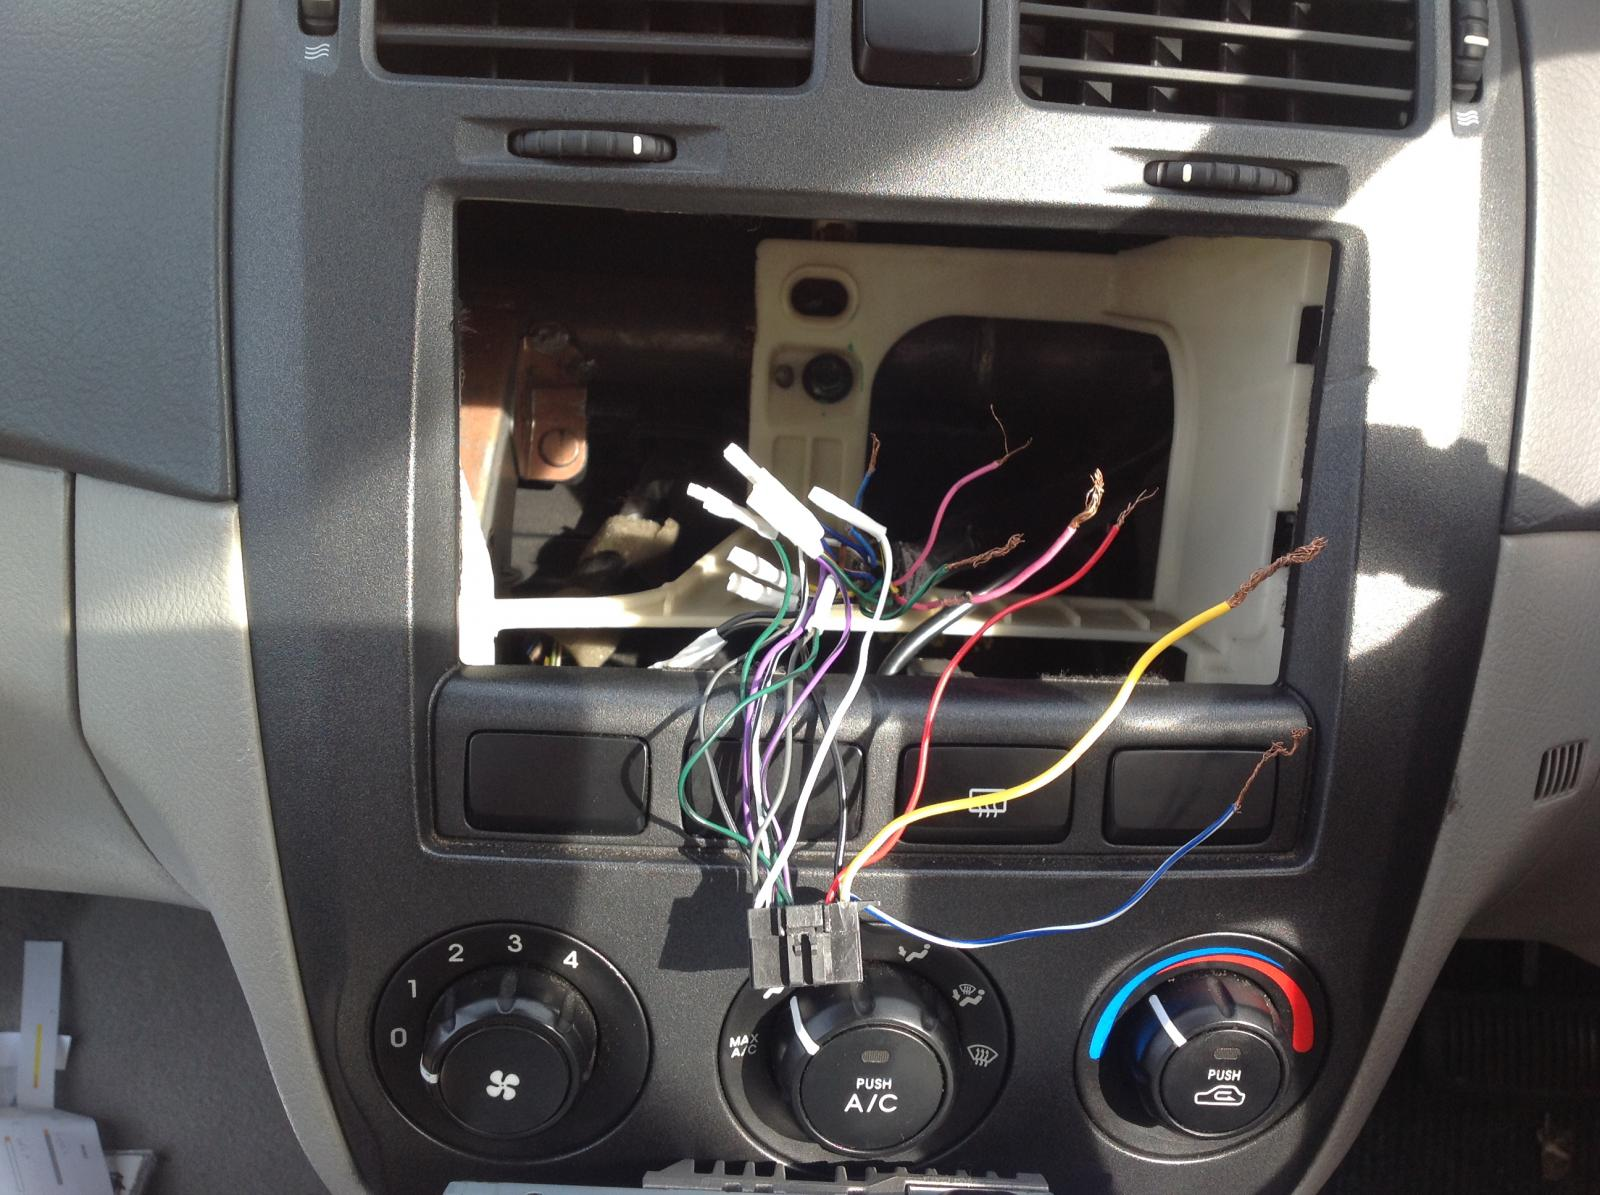 2014 Kia Sportage Radio Wiring Diagram Libraries 05 Wire Cerato 2005 Nightmare Forumclick Image For Larger Version Name